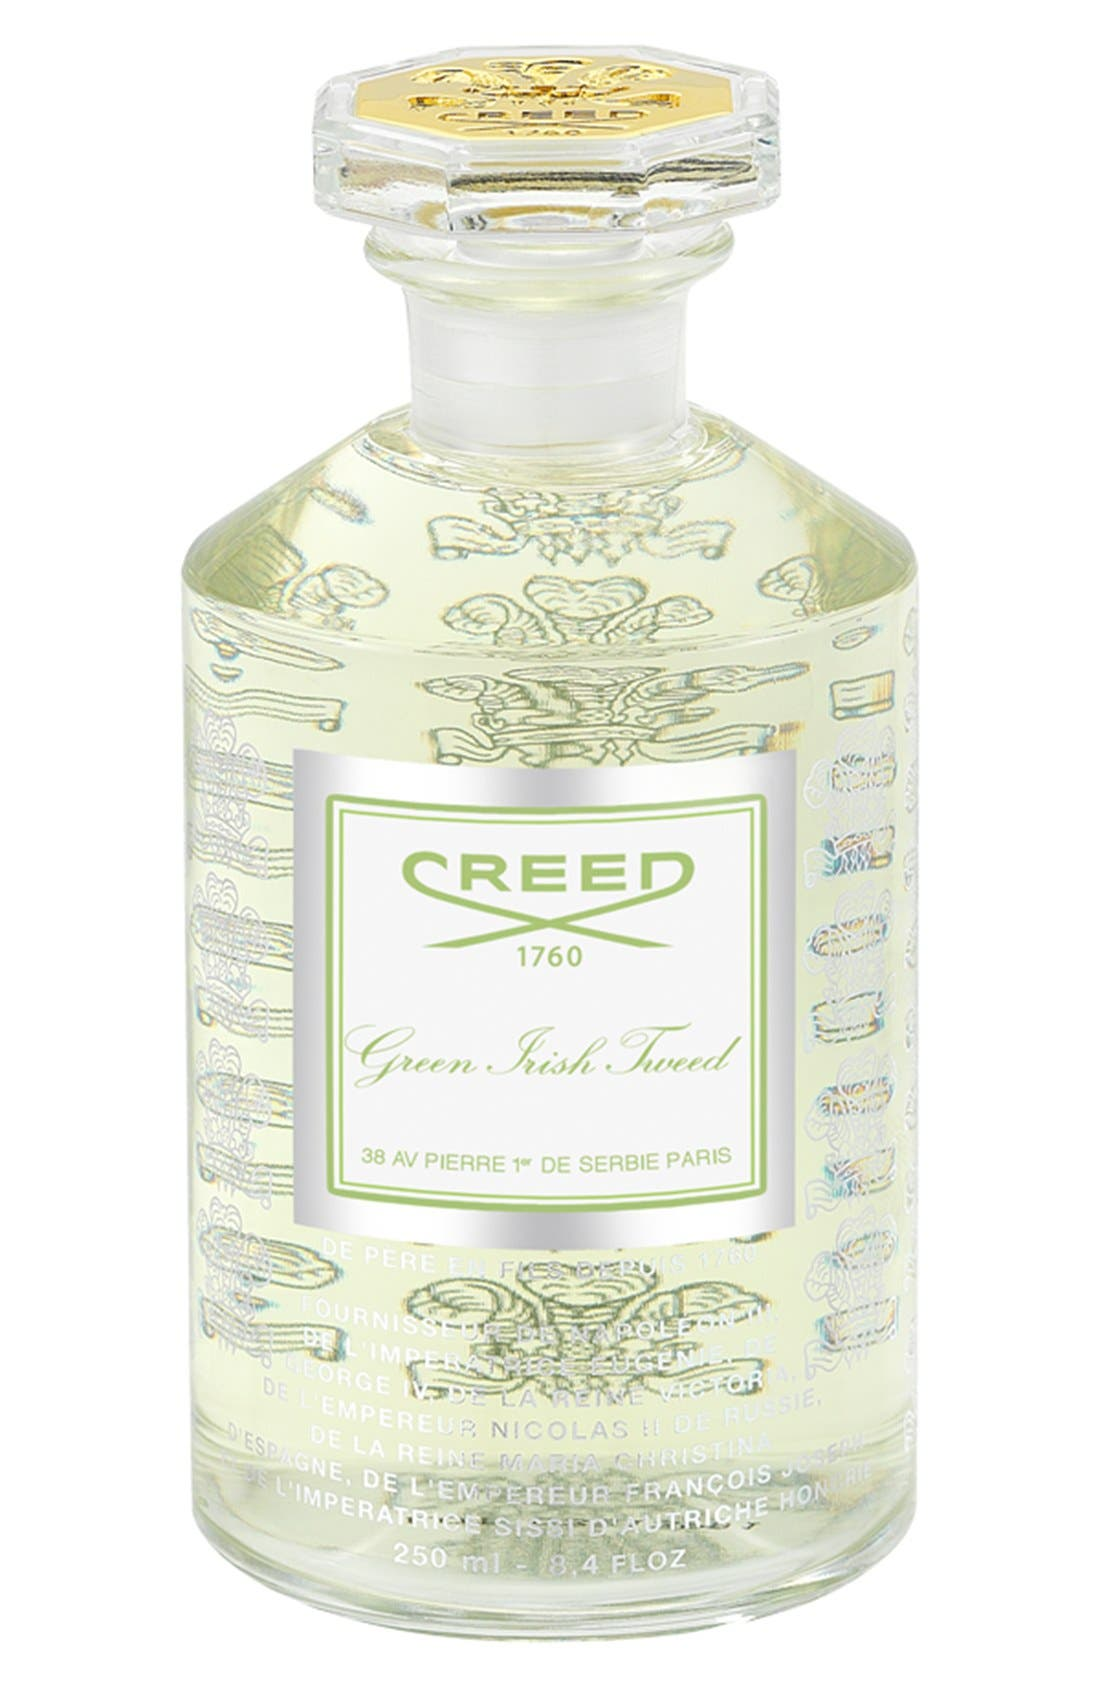 Creed 'Green Irish Tweed' Fragrance (8.4 oz.)